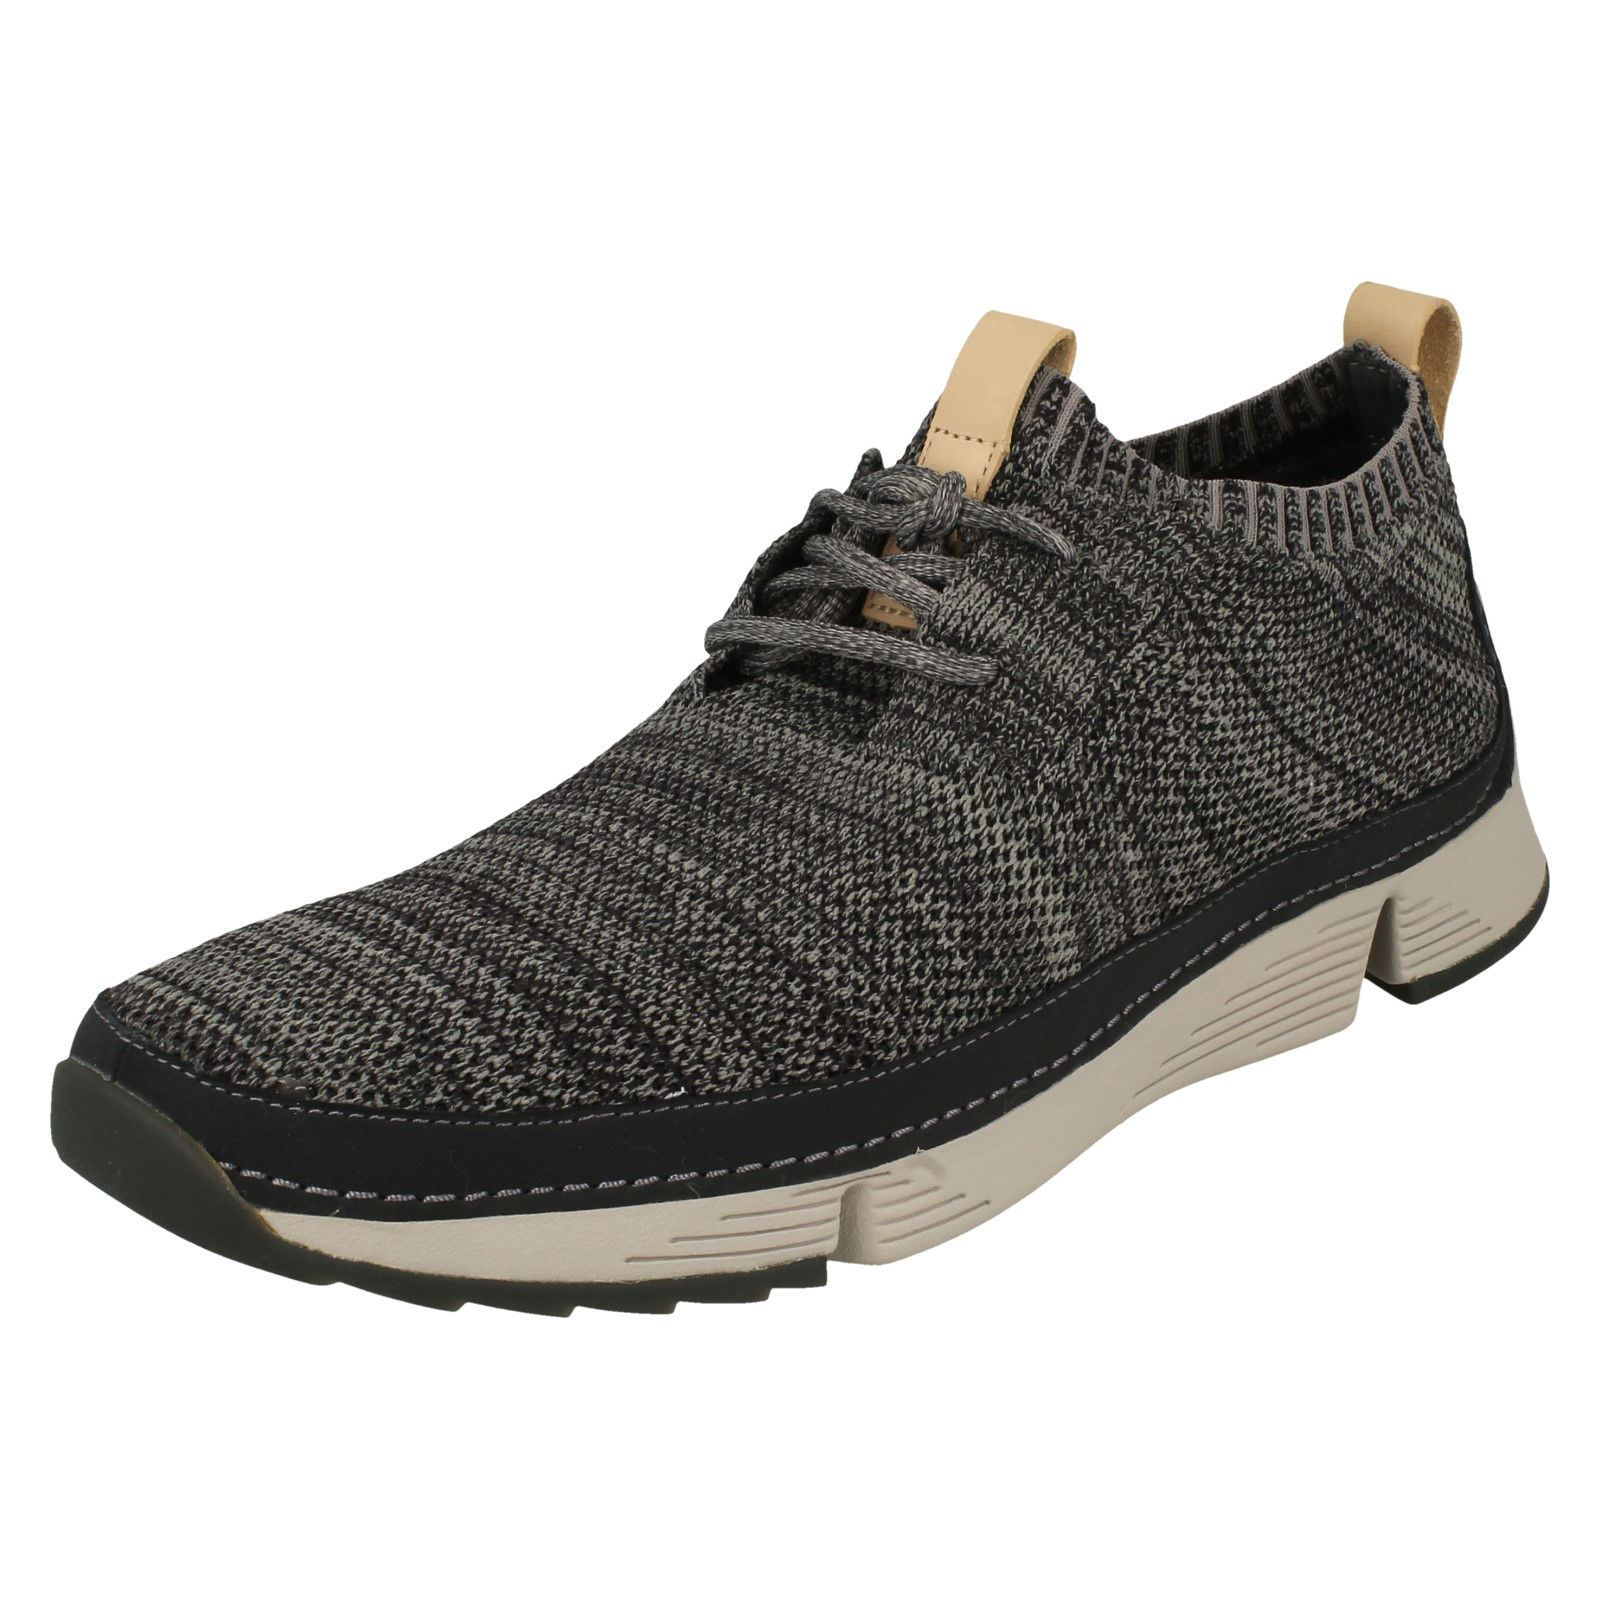 Uomo Clarks - Casual Lace Up Trainers - Clarks Tri Native f49615